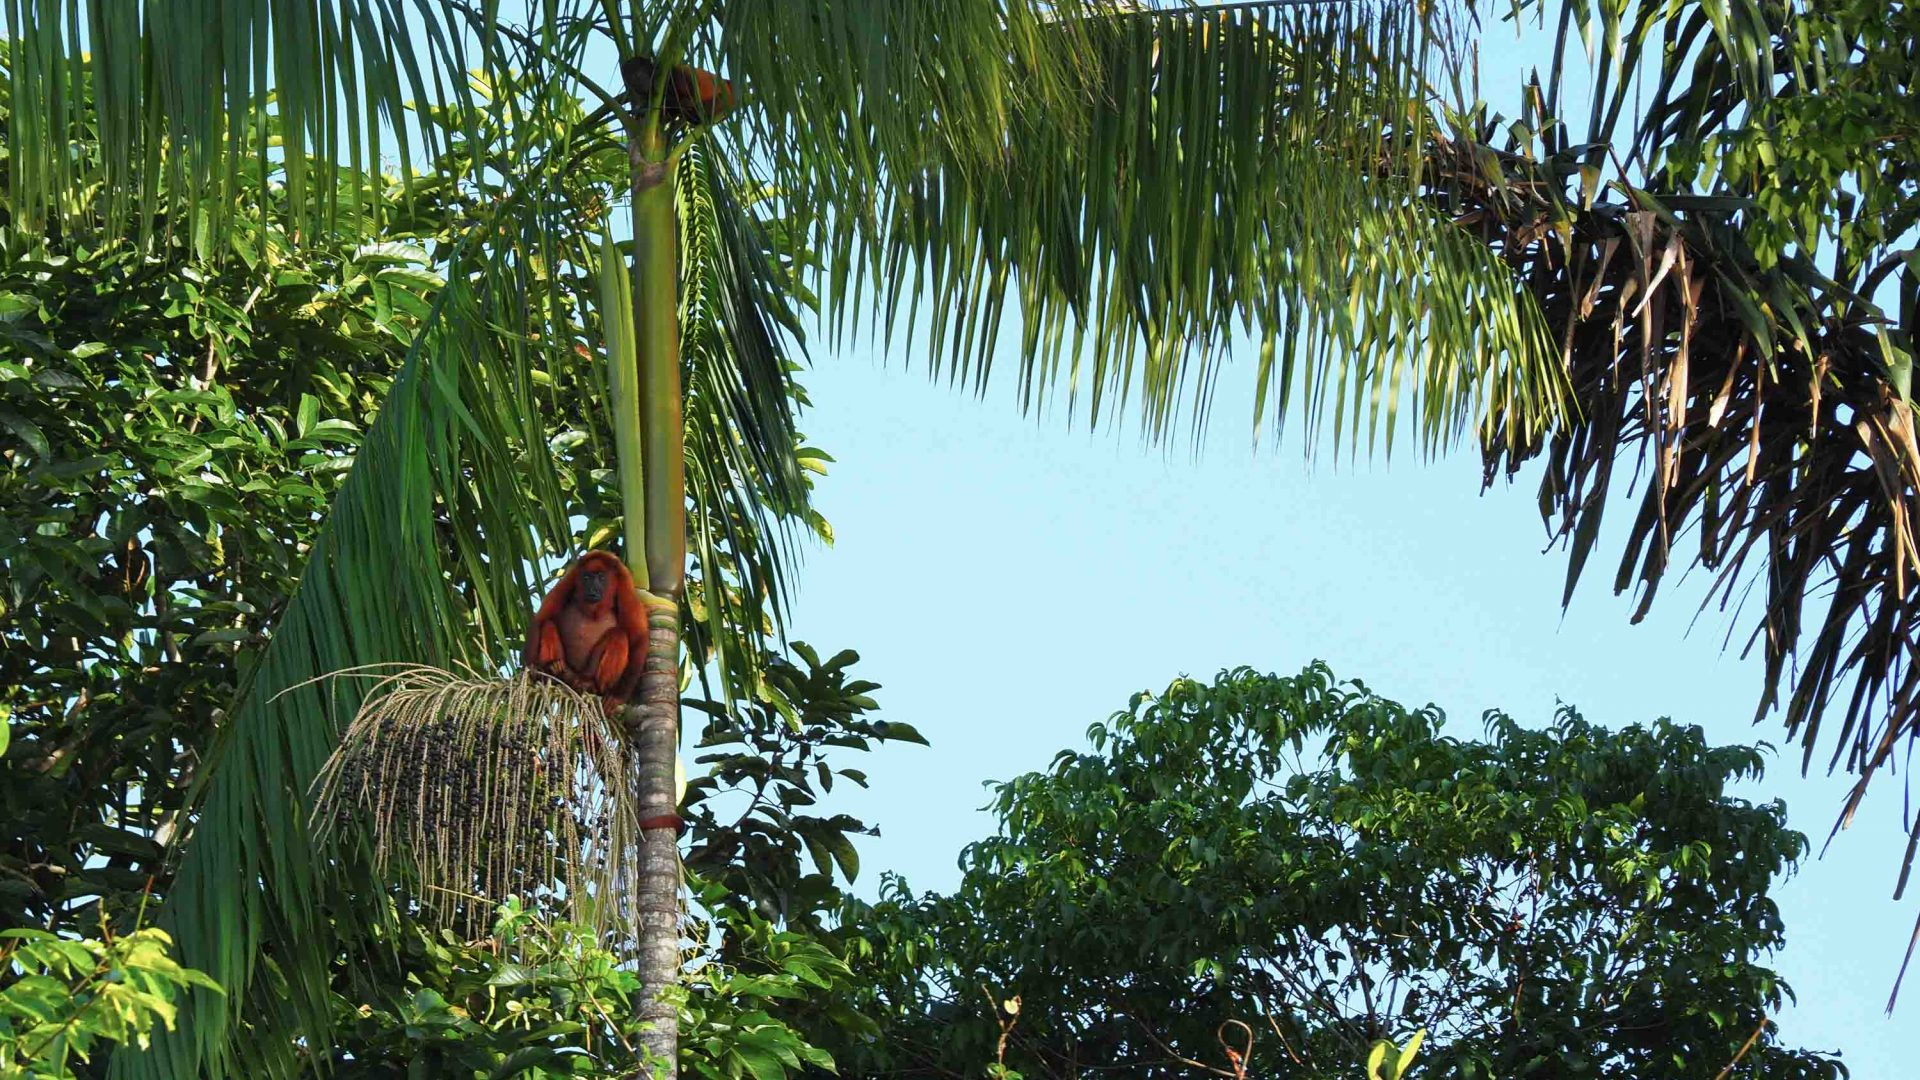 A red howler monkey hangs out alongside the Essequibo River, Guyana's largest river.